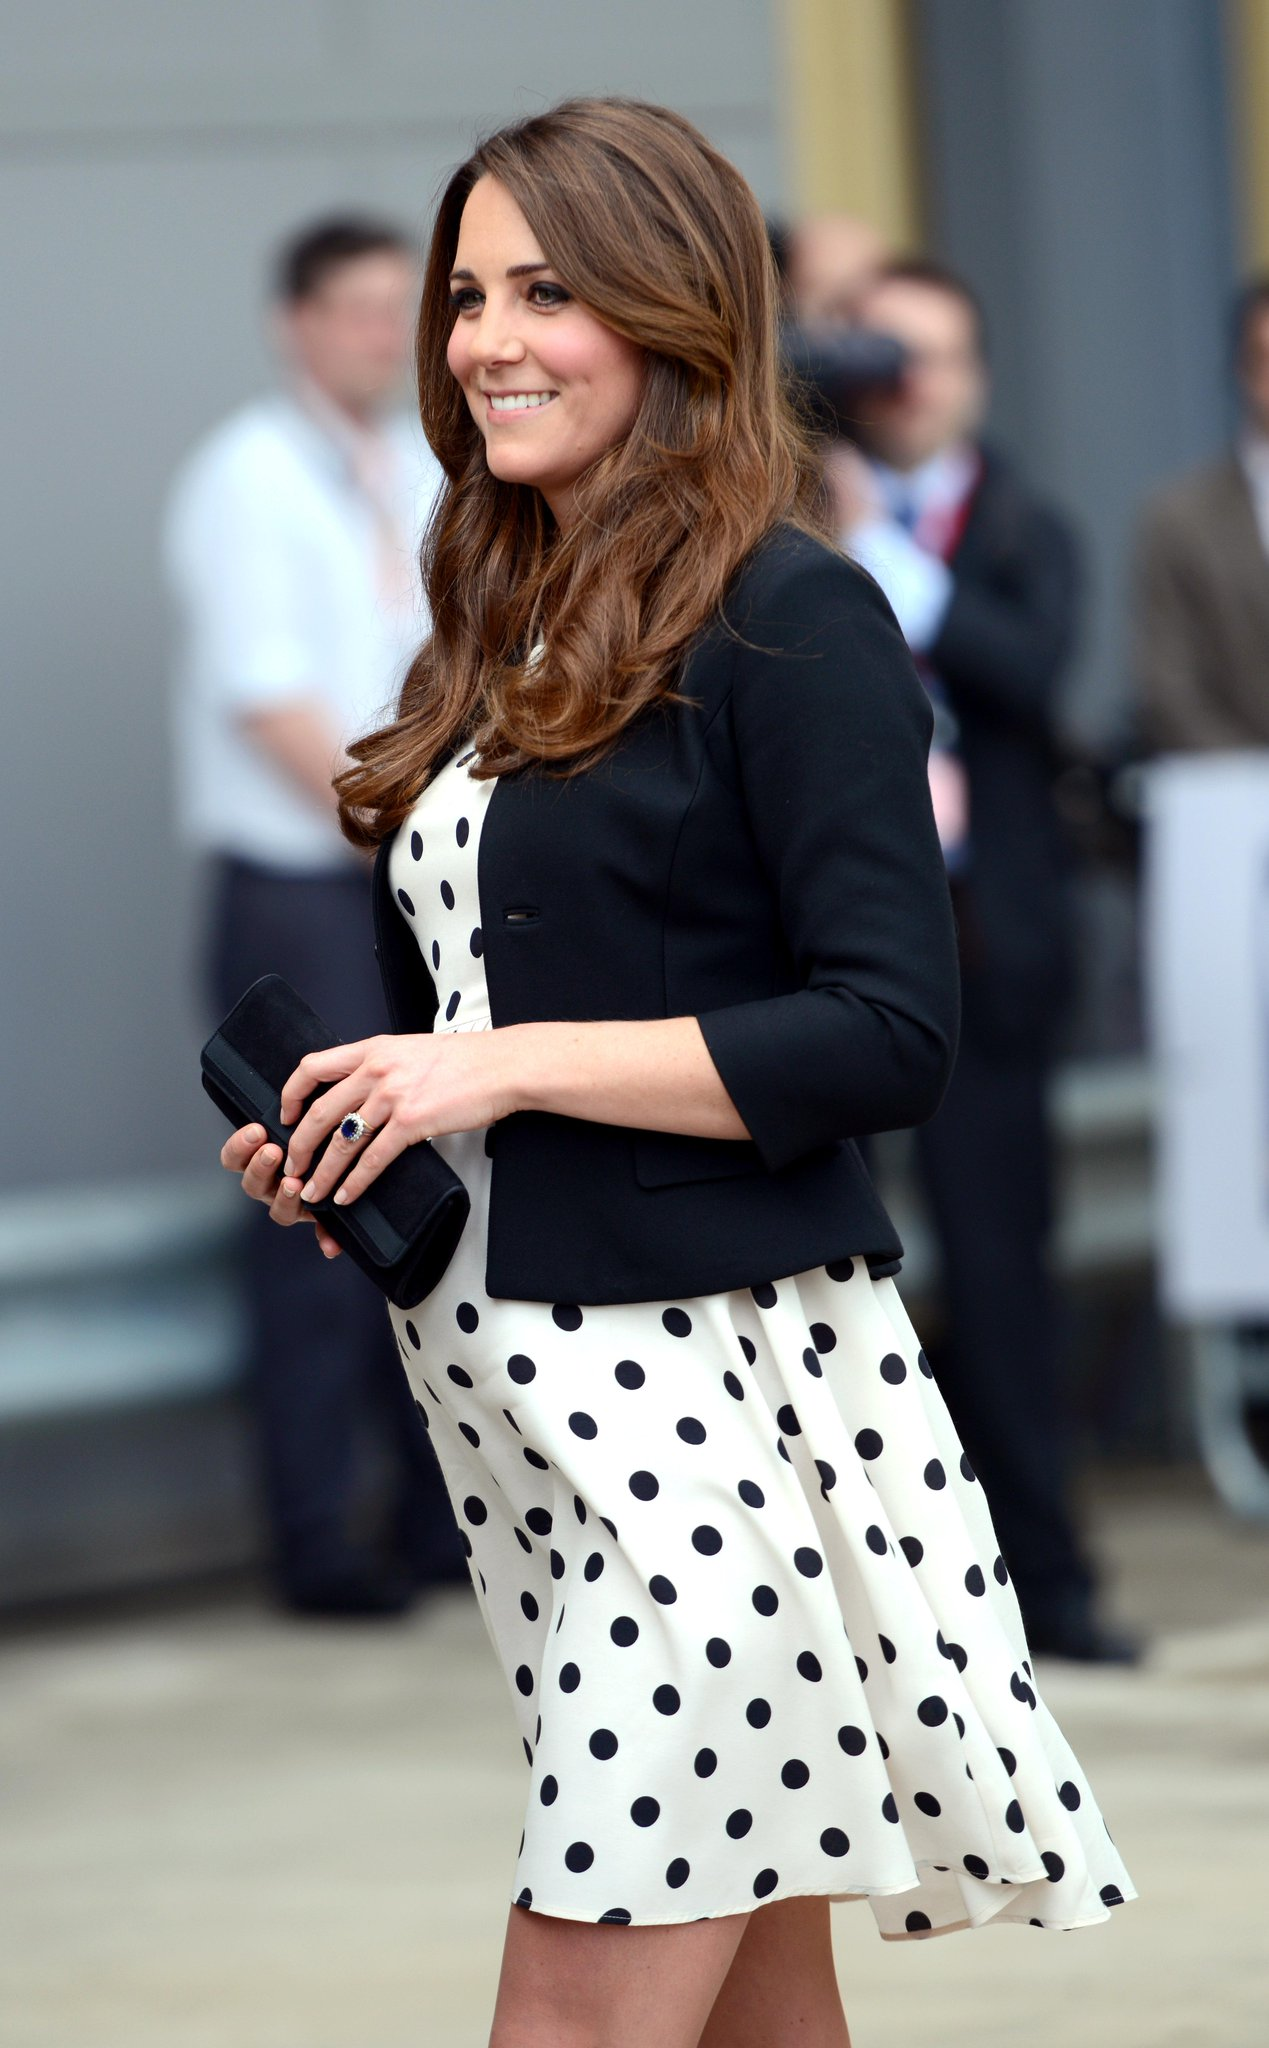 Who's excited for #royalbaby round 2? A look back at Duchess Kate's maternity style: http://t.co/8Je6I1HLYZ http://t.co/jnGtmqkwTW